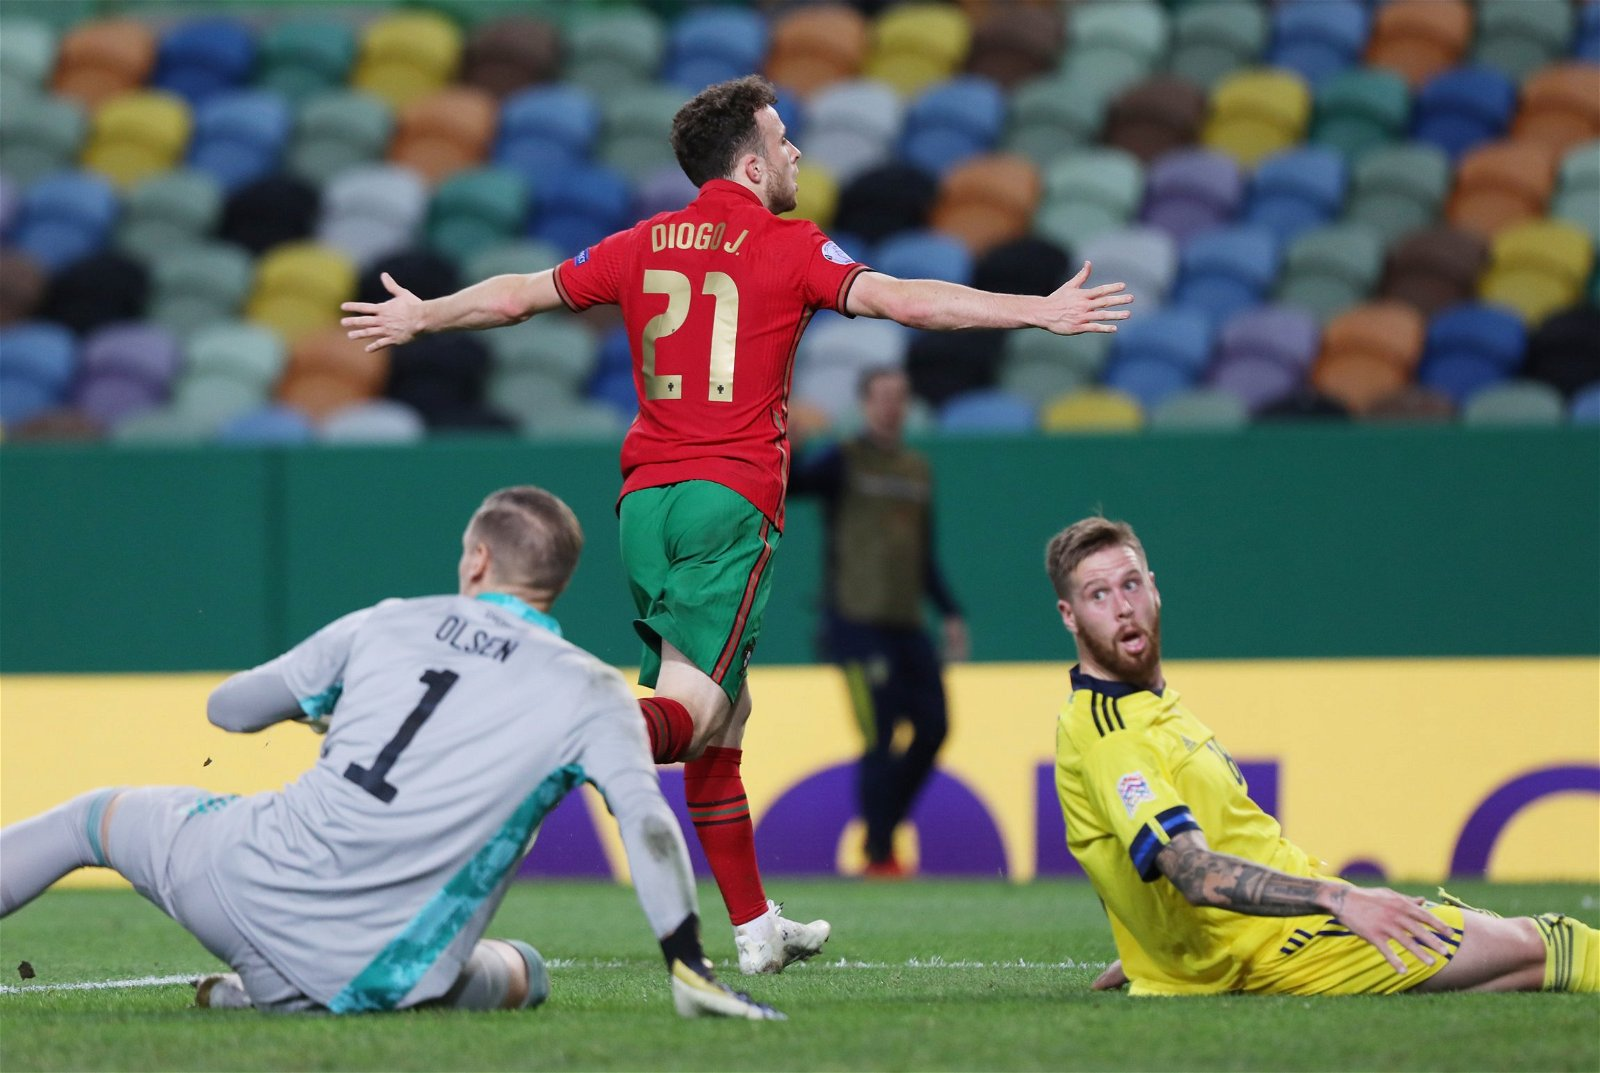 Diogo Jota celebrates for Portugal - 9.5 rating: One man can add new dimension to Klopp's attack, could transform Liverpool – opinion